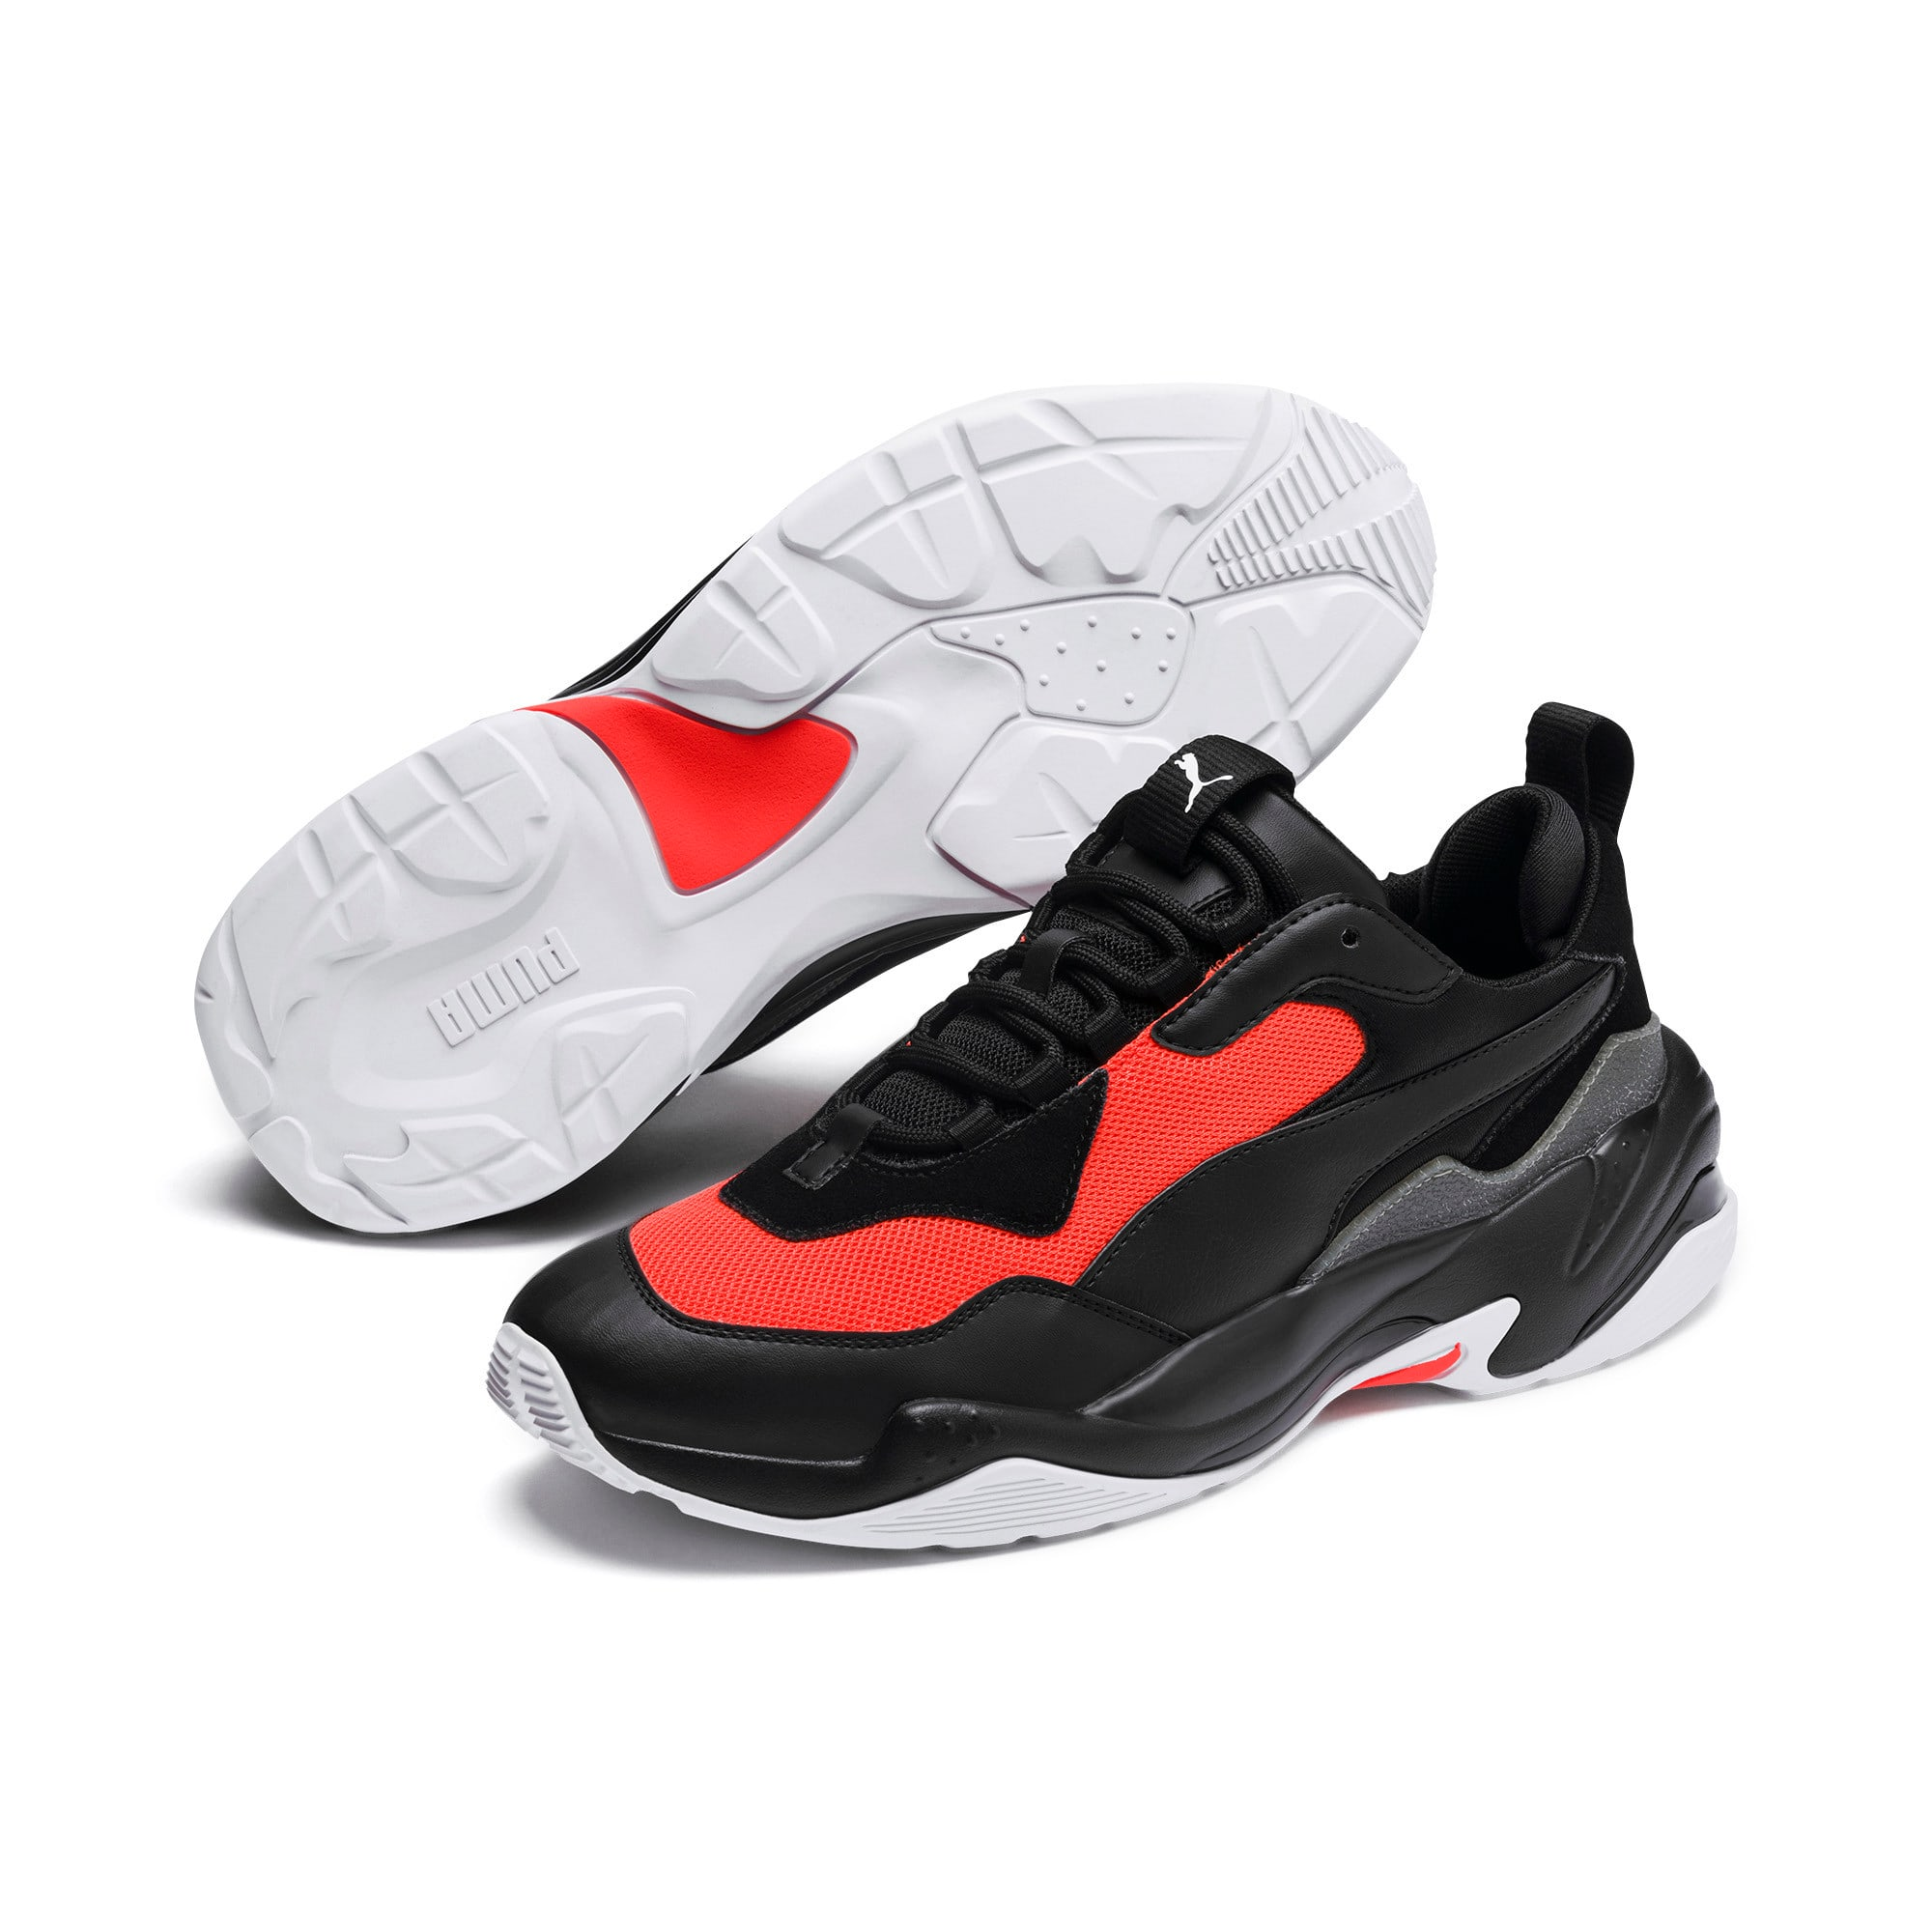 Thumbnail 3 of Thunder Fashion 2.0 Trainers, Puma Black-Nrgy Red, medium